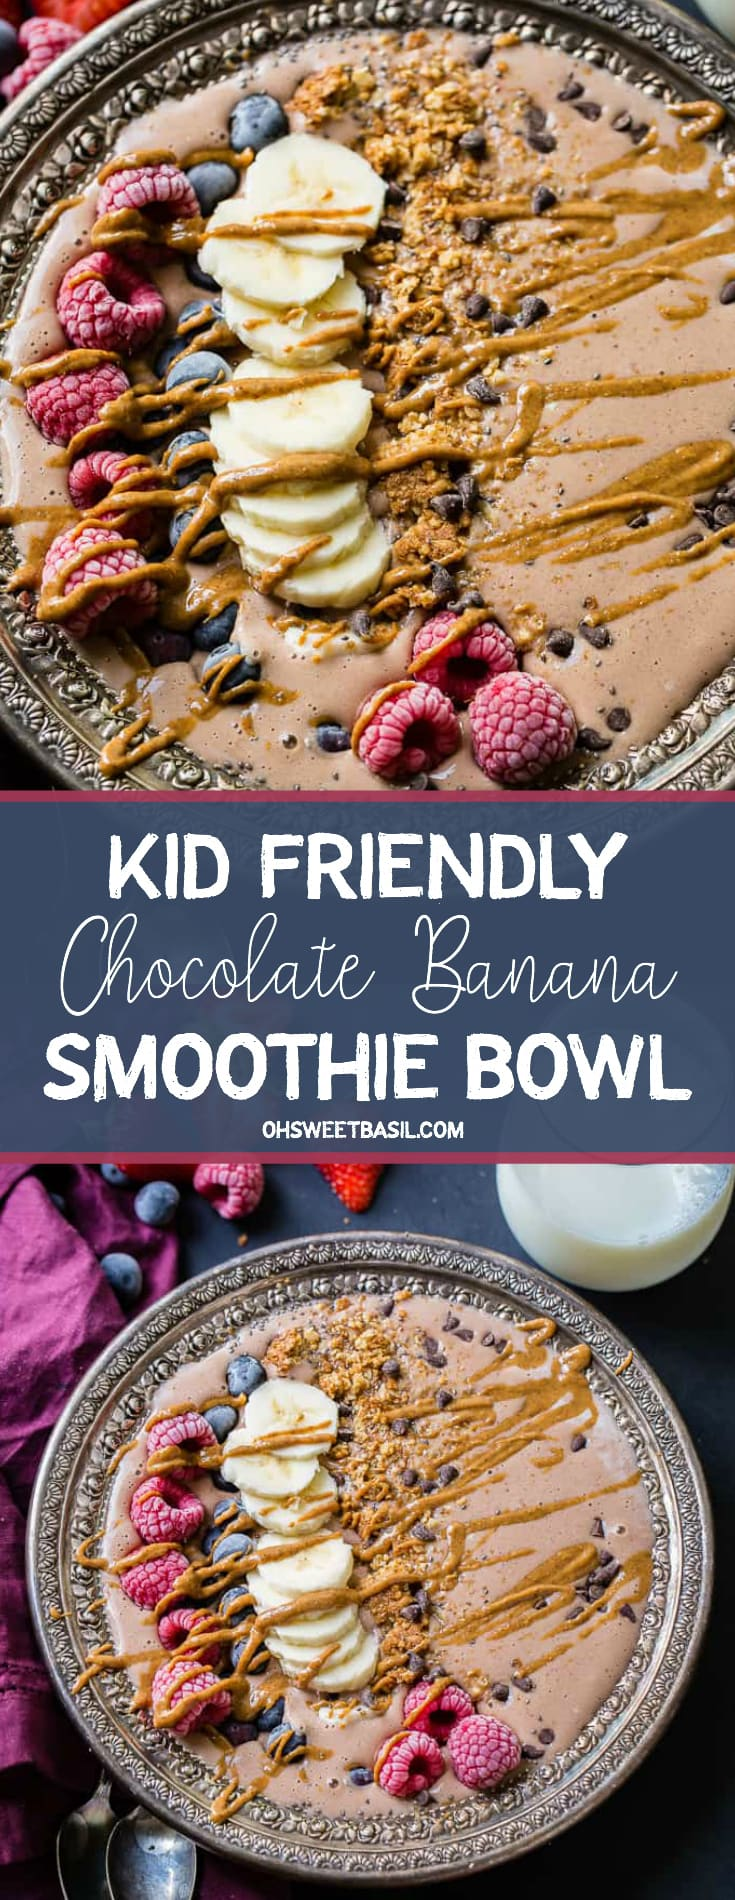 a black board with a purple napkin nestled next to a vintage silver bowl and two vintage silver spoons. A chocolate smoothie with raspberries, bananas, blueberries, granola and chocolate chips all drizzled with peanut butter and a glass of milk behind it.